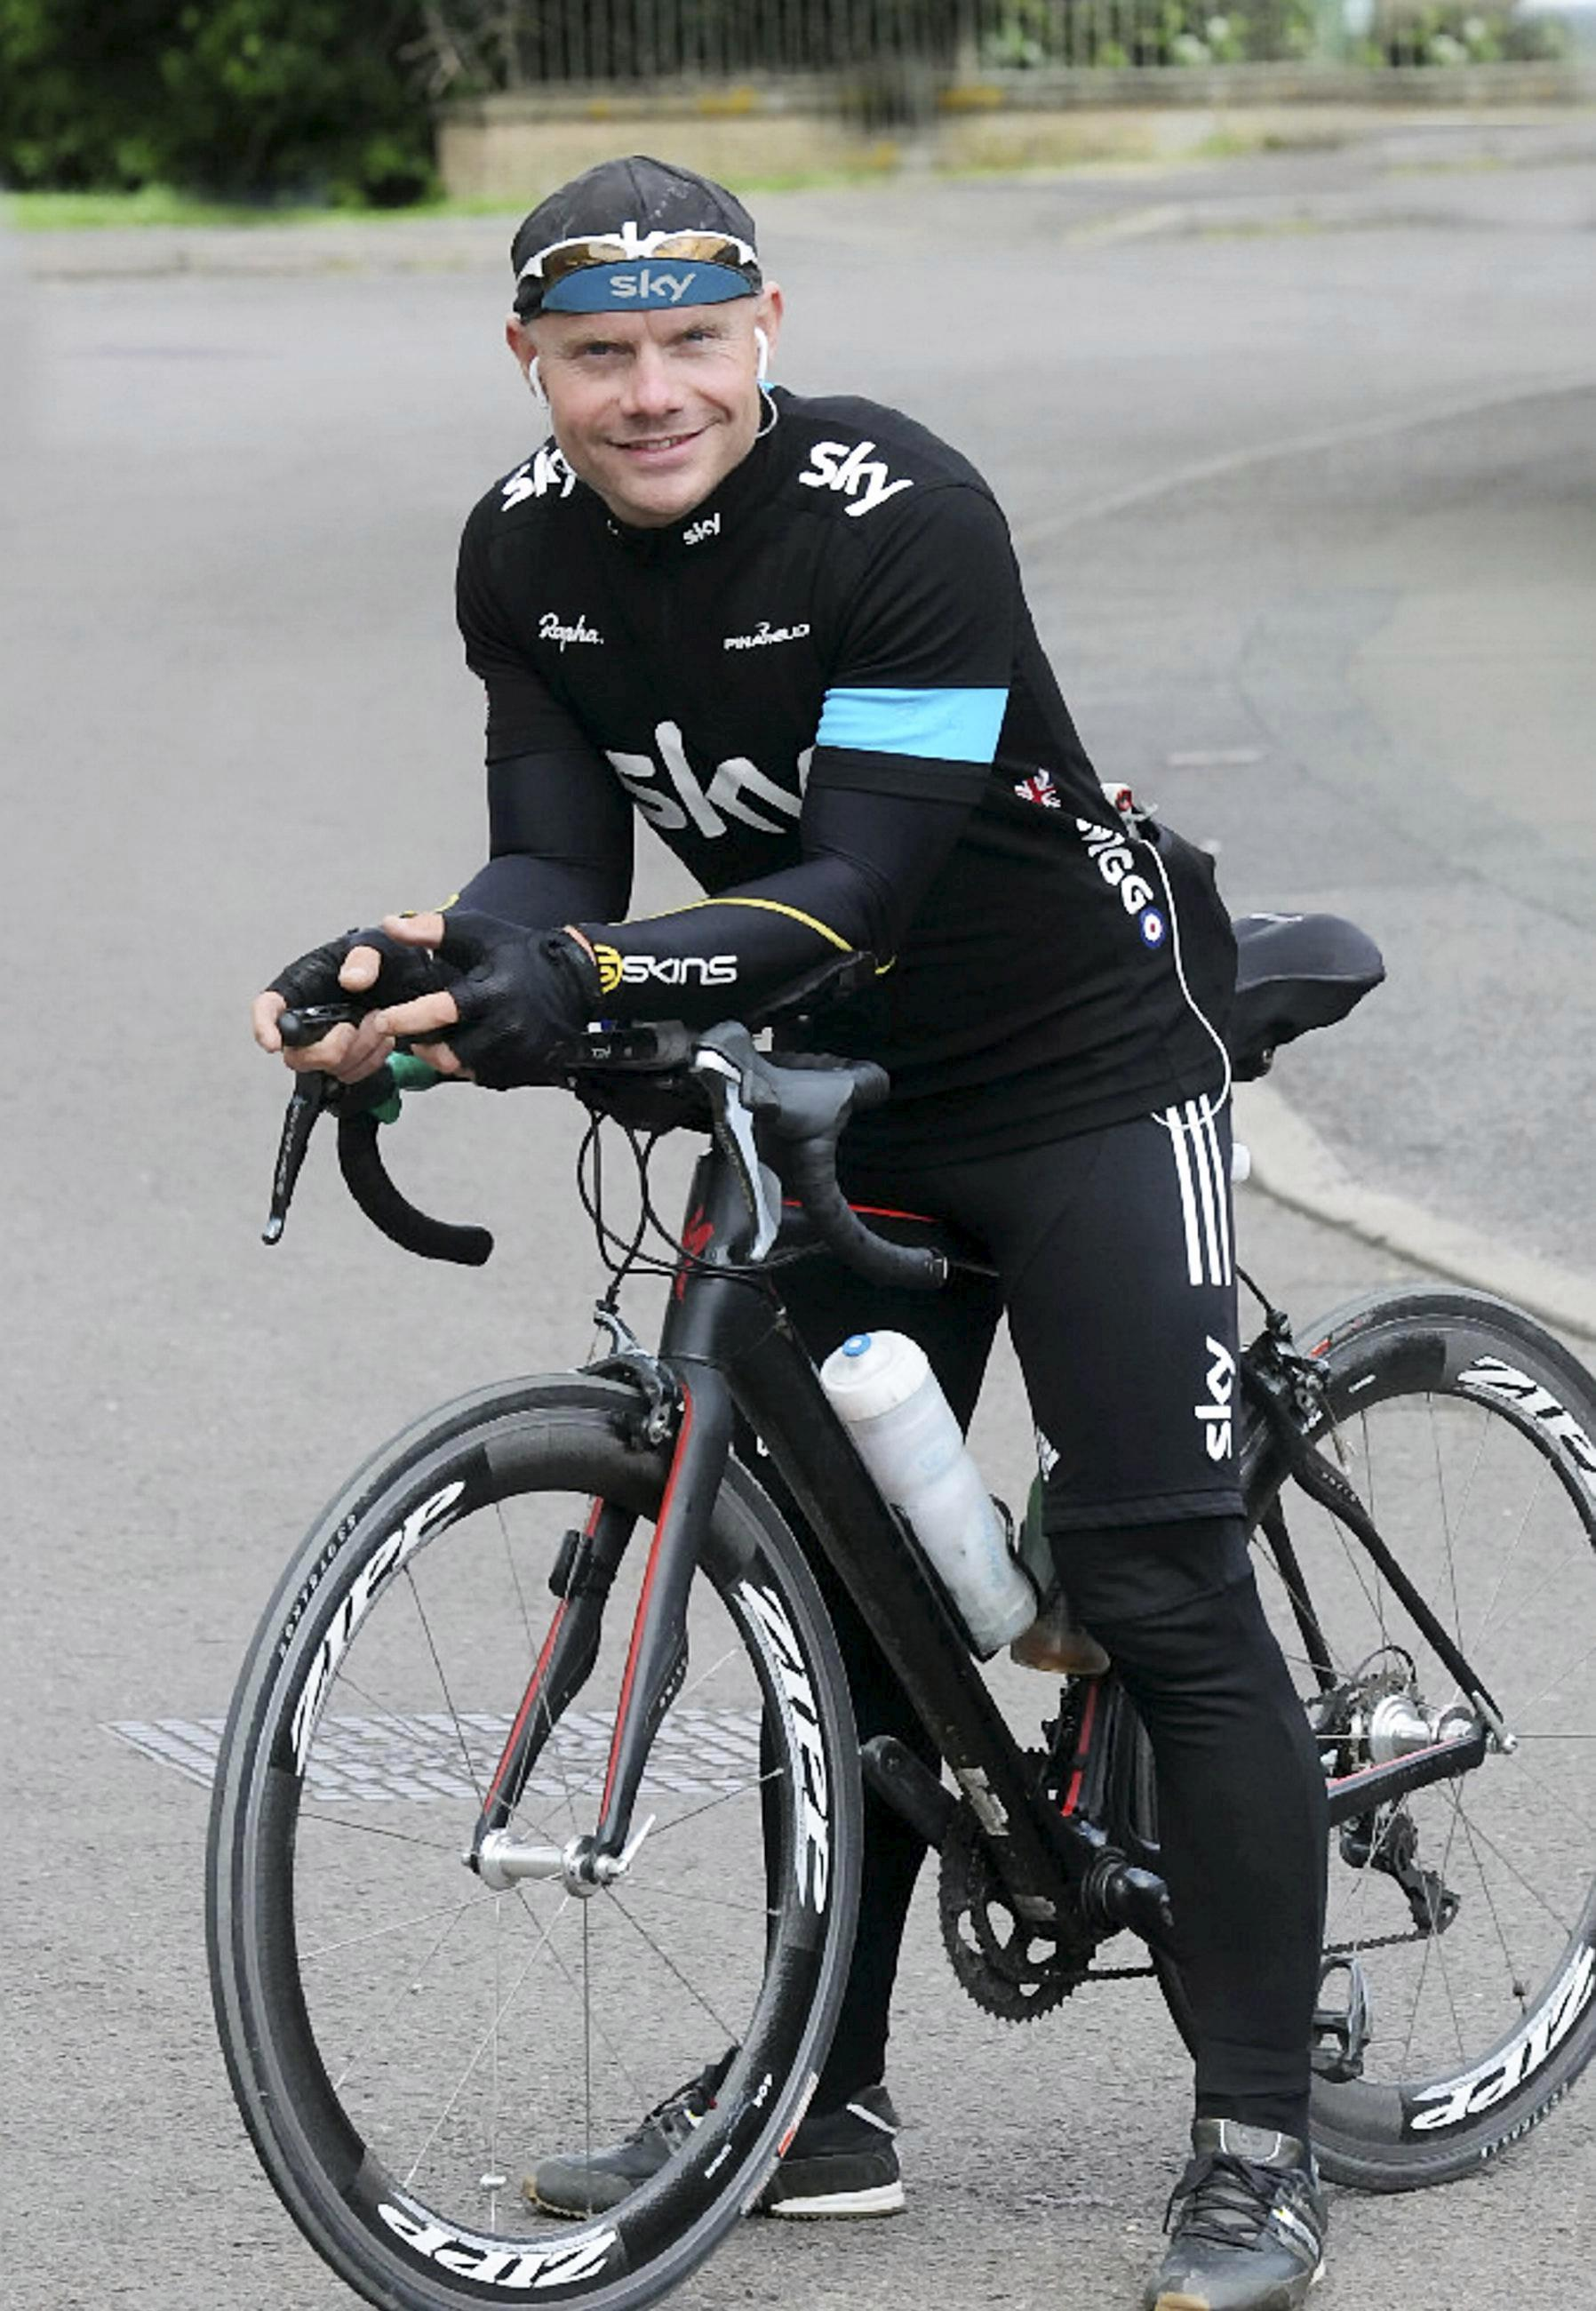 Record-breaking cyclist who was fastest man to bike across Europe in epic 4,300-mile race dies suddenly aged 40